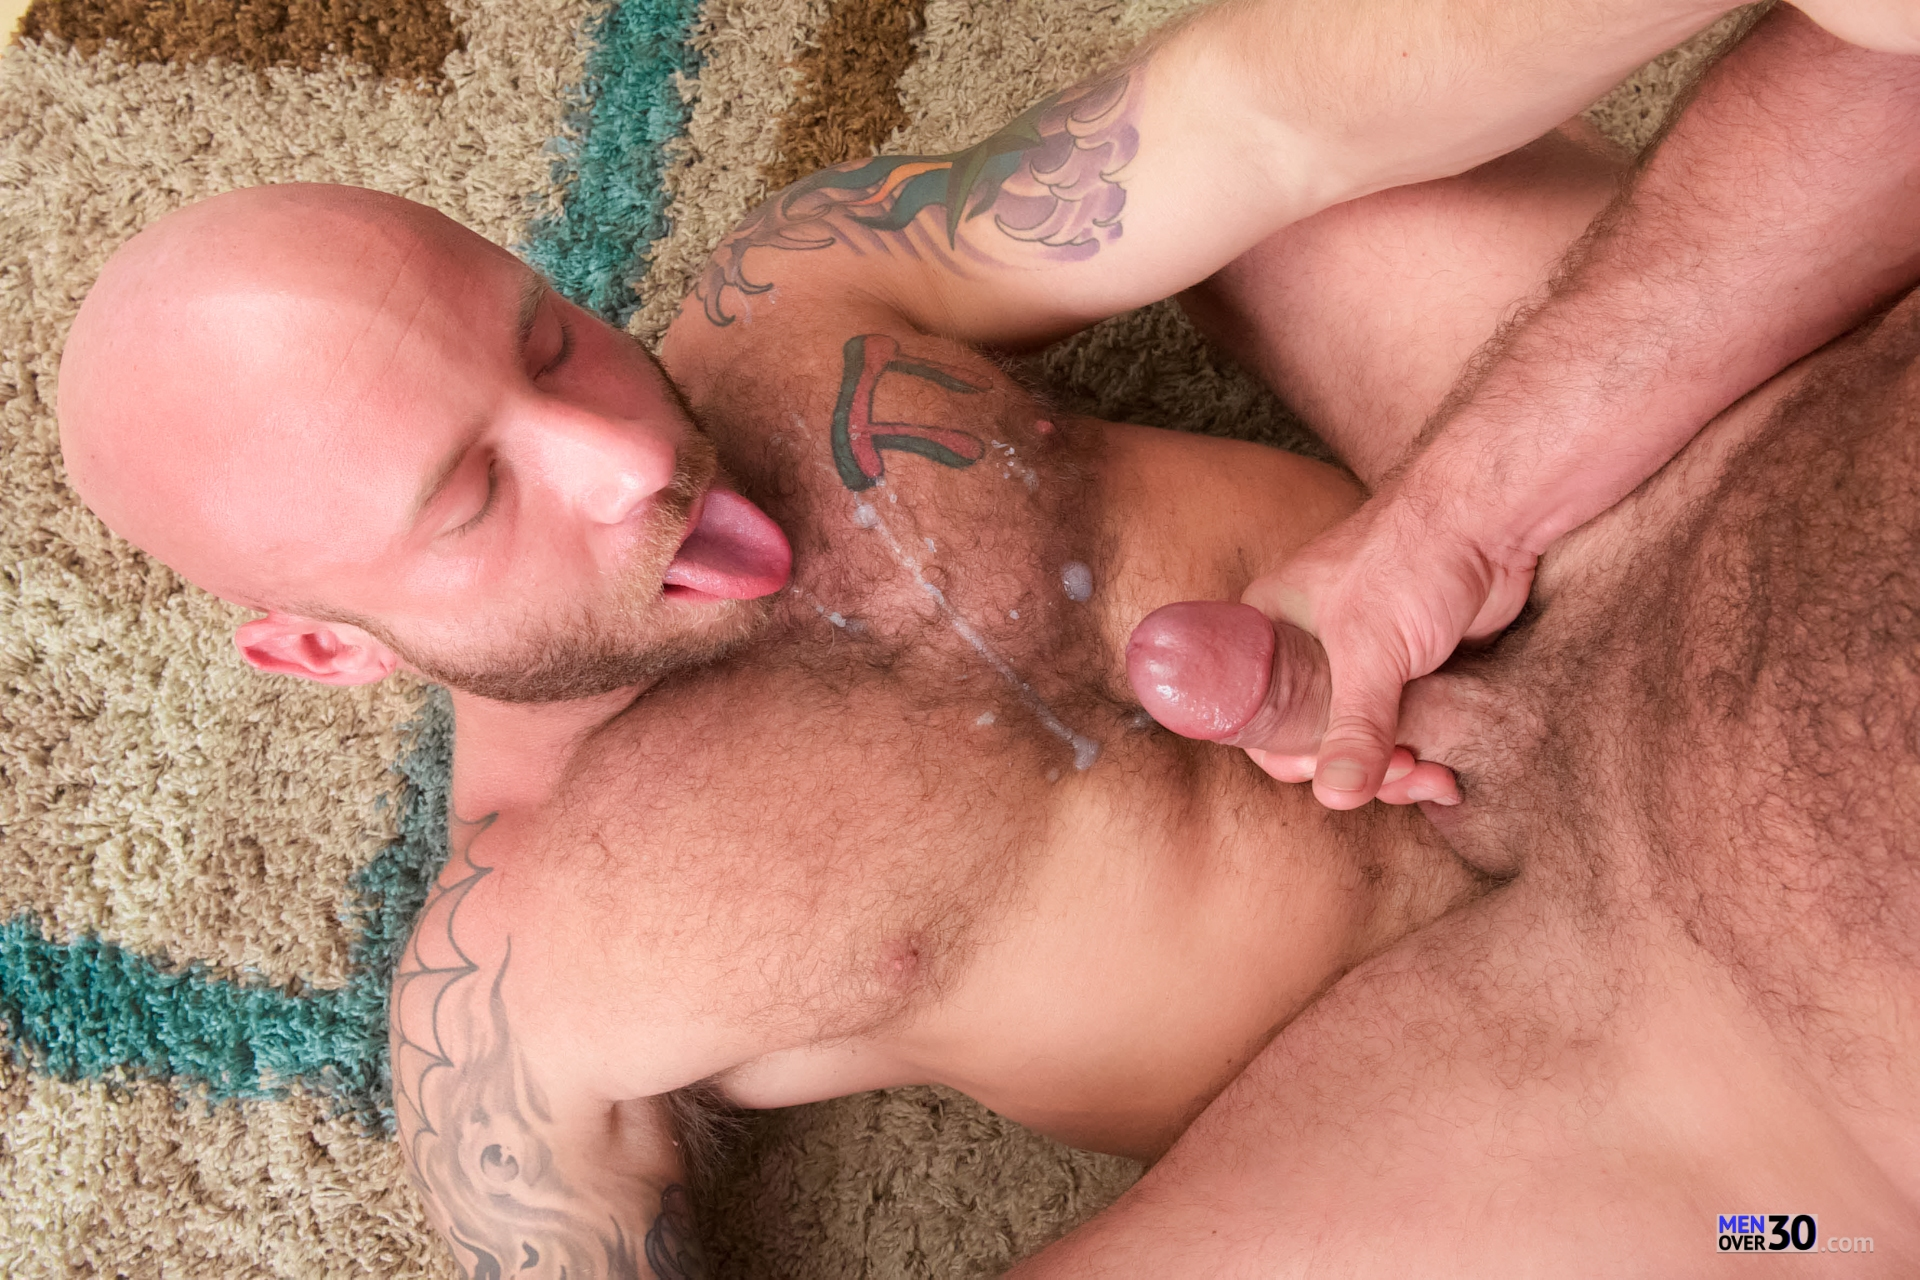 Men Over 30 – Hot Fucking